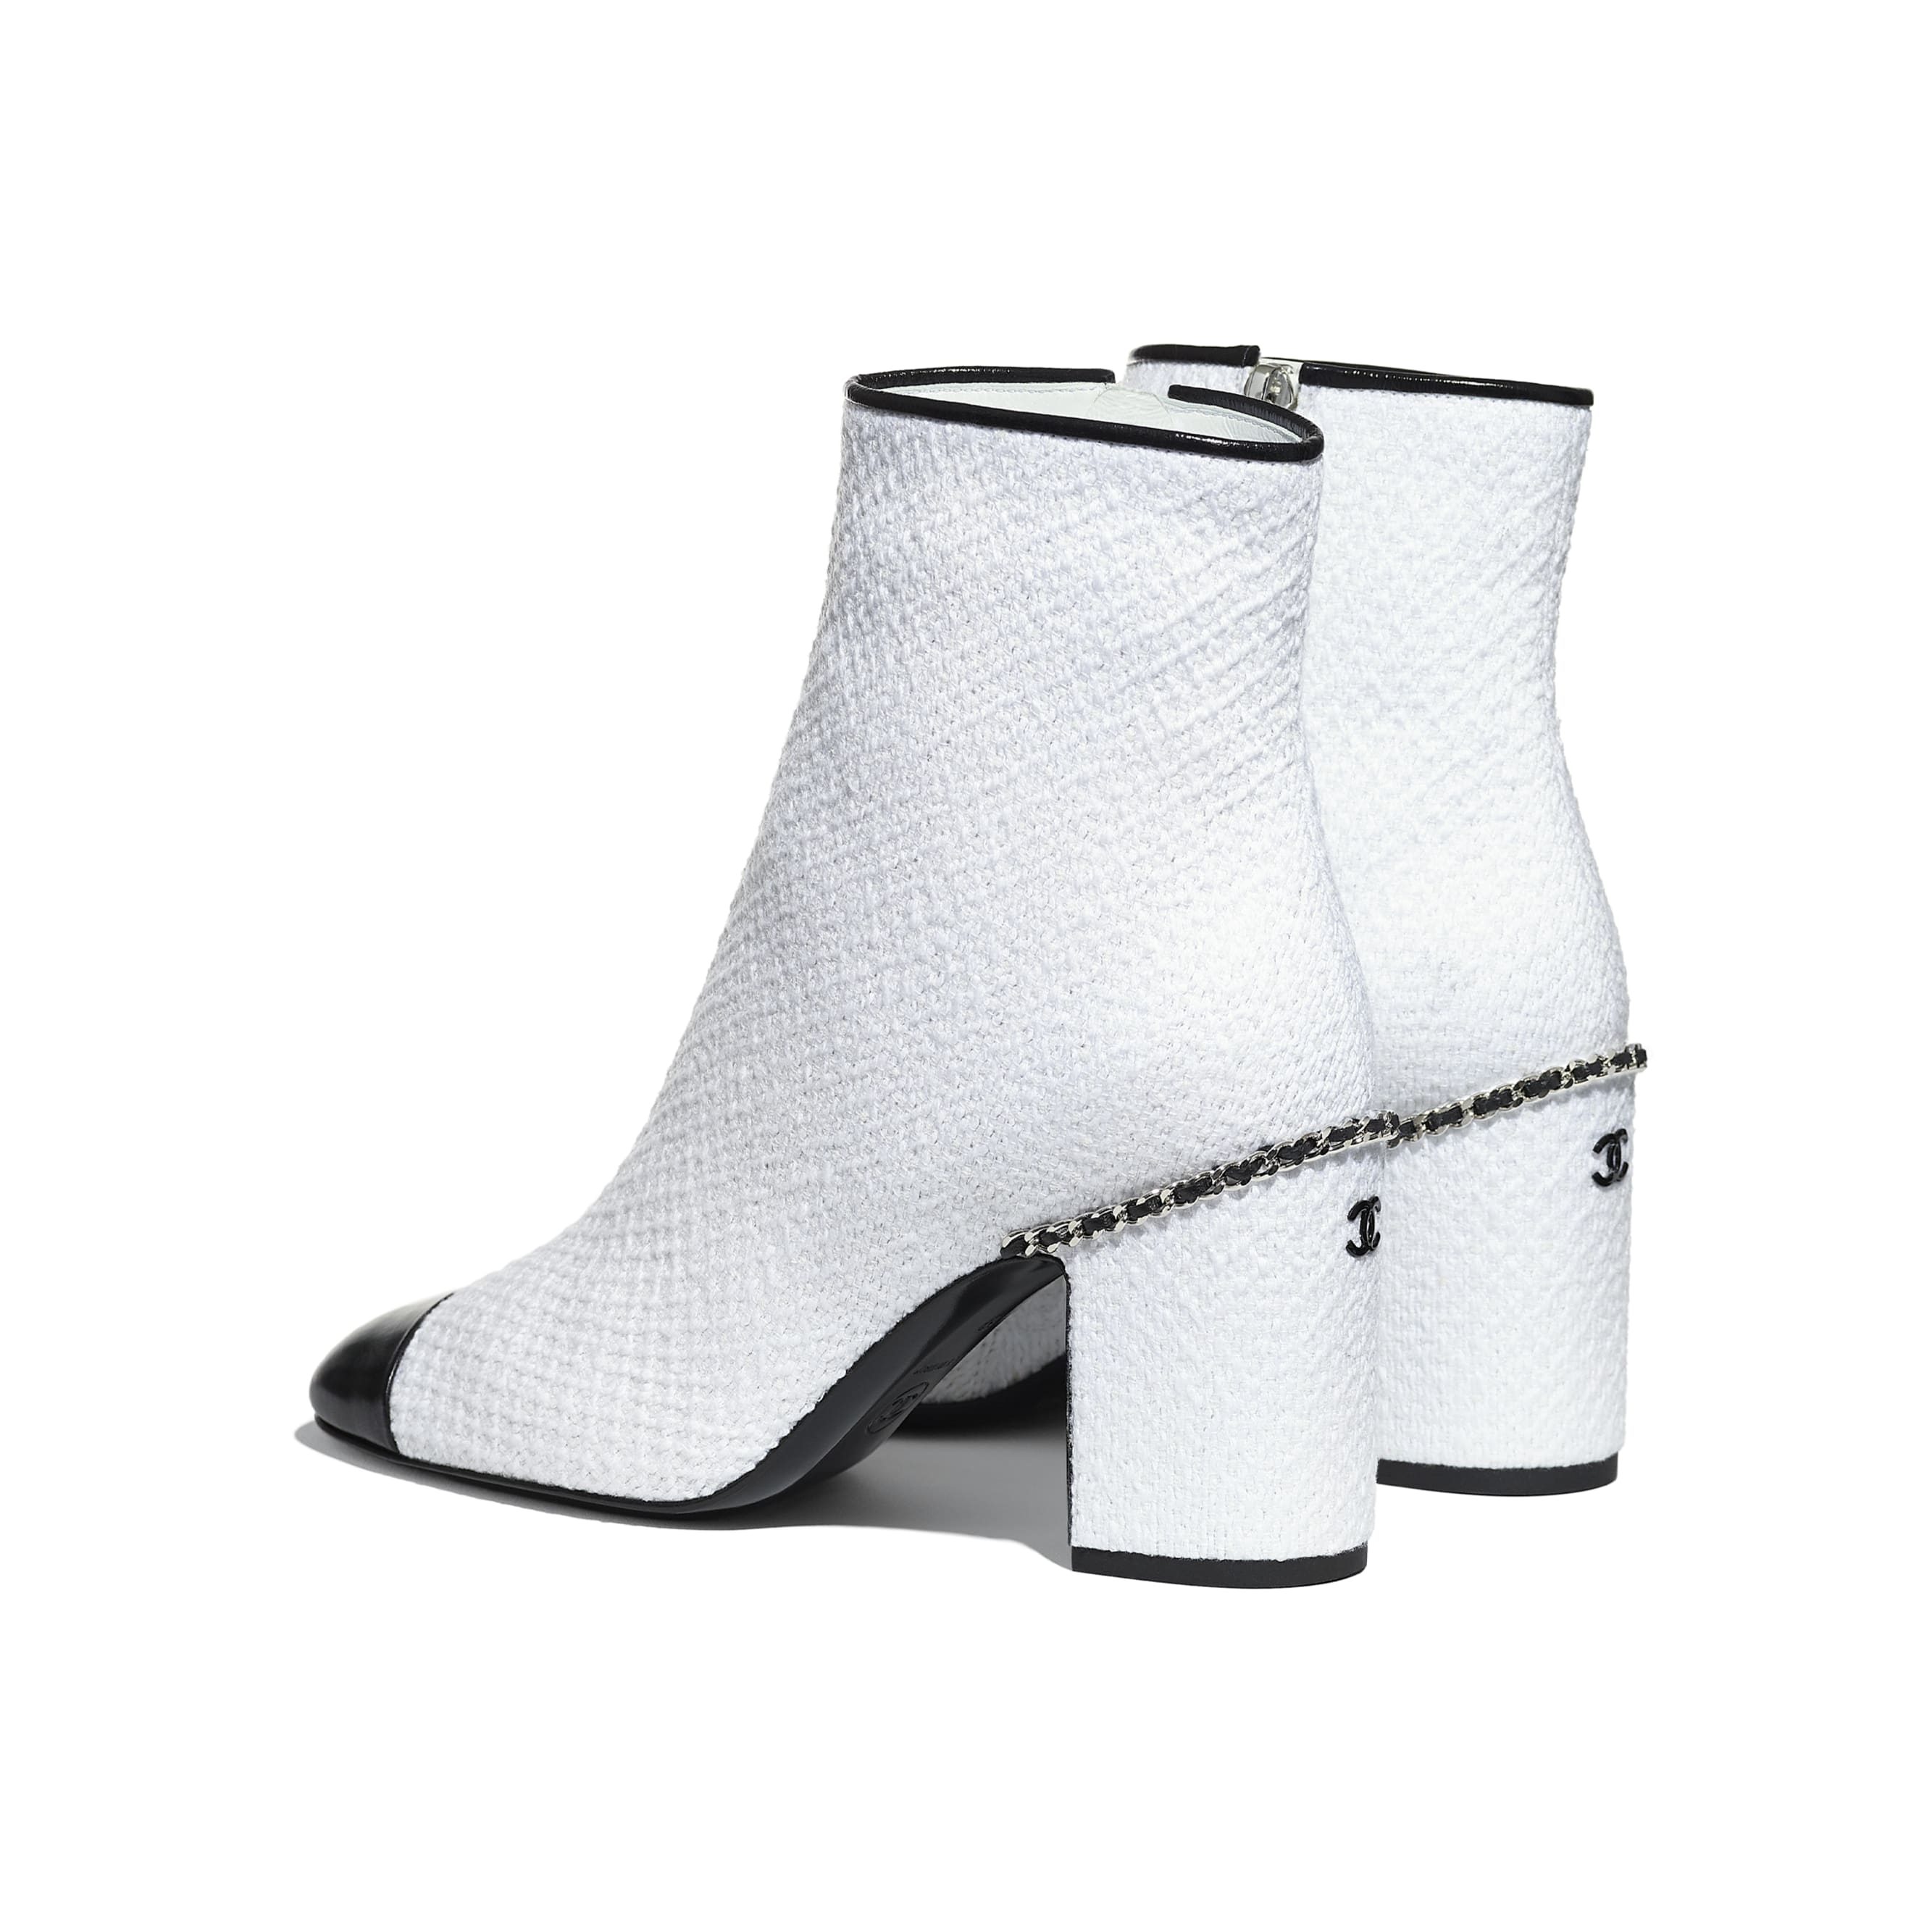 Ankle Boots - Ivory & Black - Tweed & Shiny Calfskin - CHANEL - Other view - see standard sized version